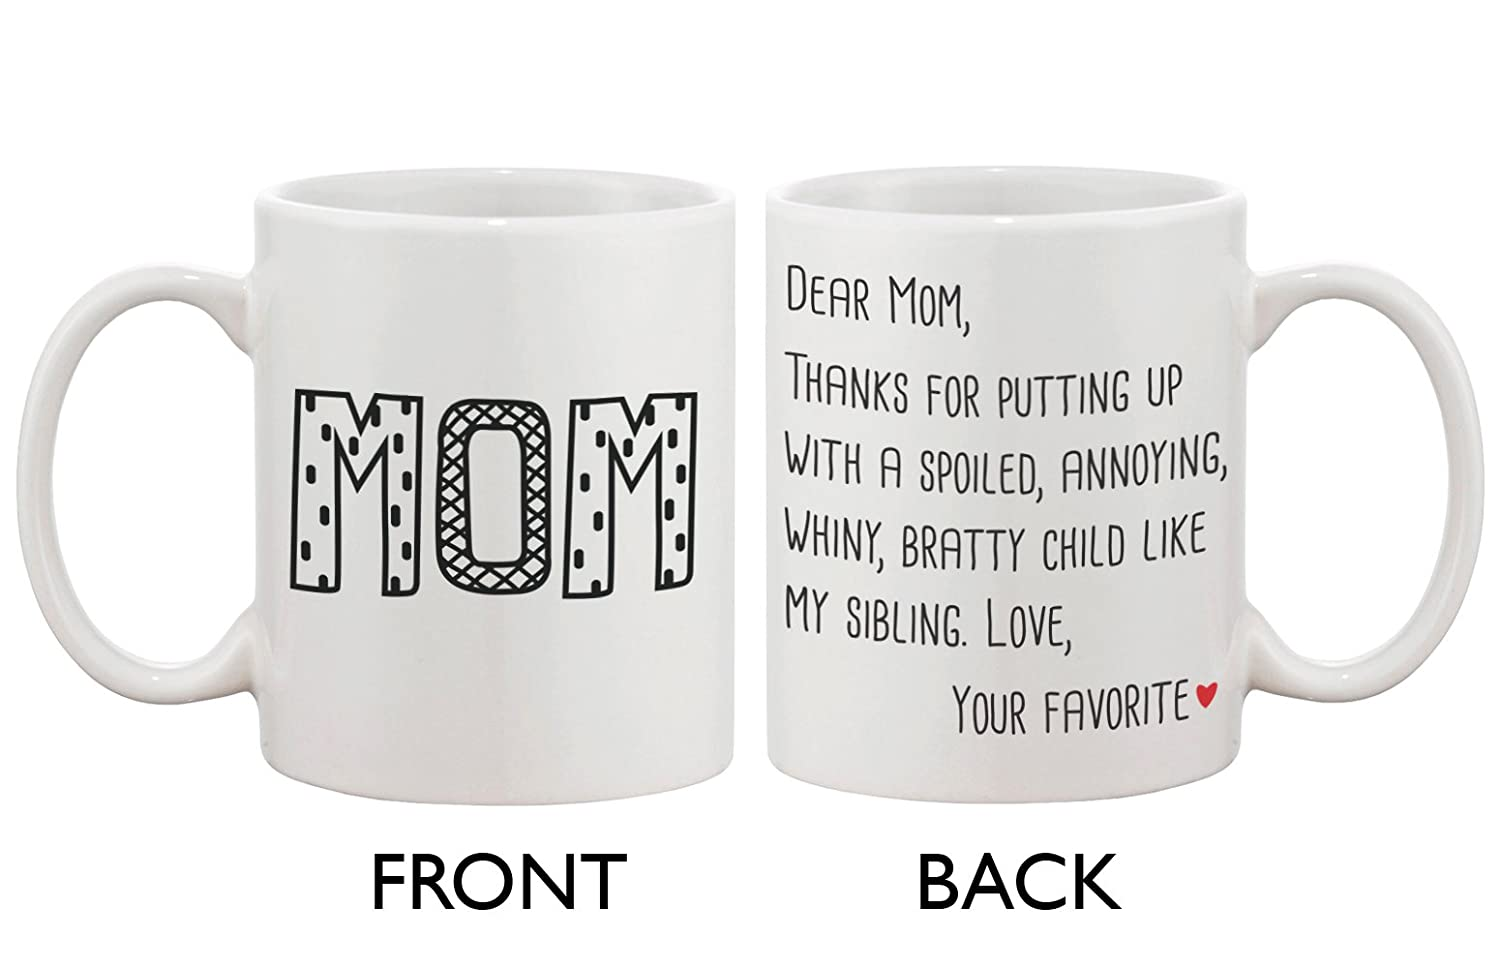 Amazon.com: Cute Ceramic Coffee Mug for Mom - Dear Mom From Your ...